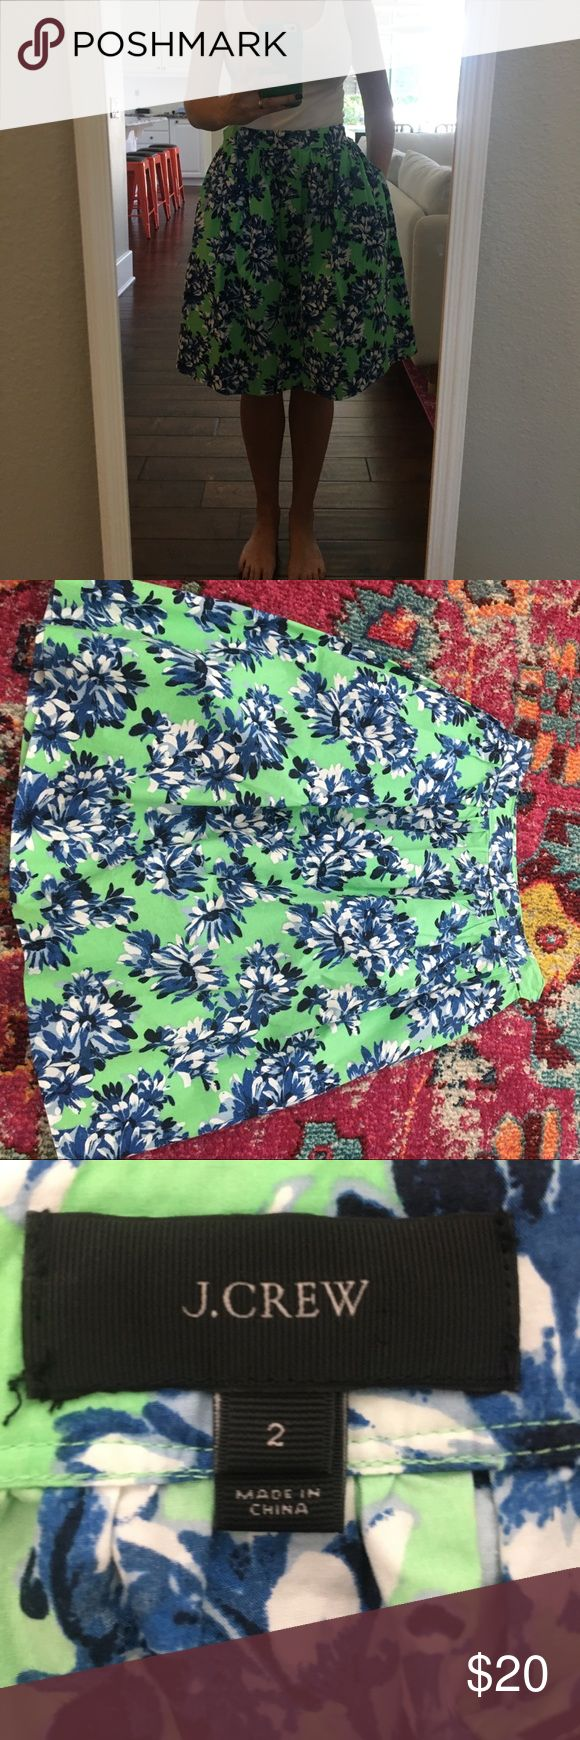 J crew full skirt Beautiful full skirt with pockets and side zipper. Great quality. Worn only a handful of times. Great condition. For reference, I'm 5'6 125 lbs J. Crew Skirts A-Line or Full